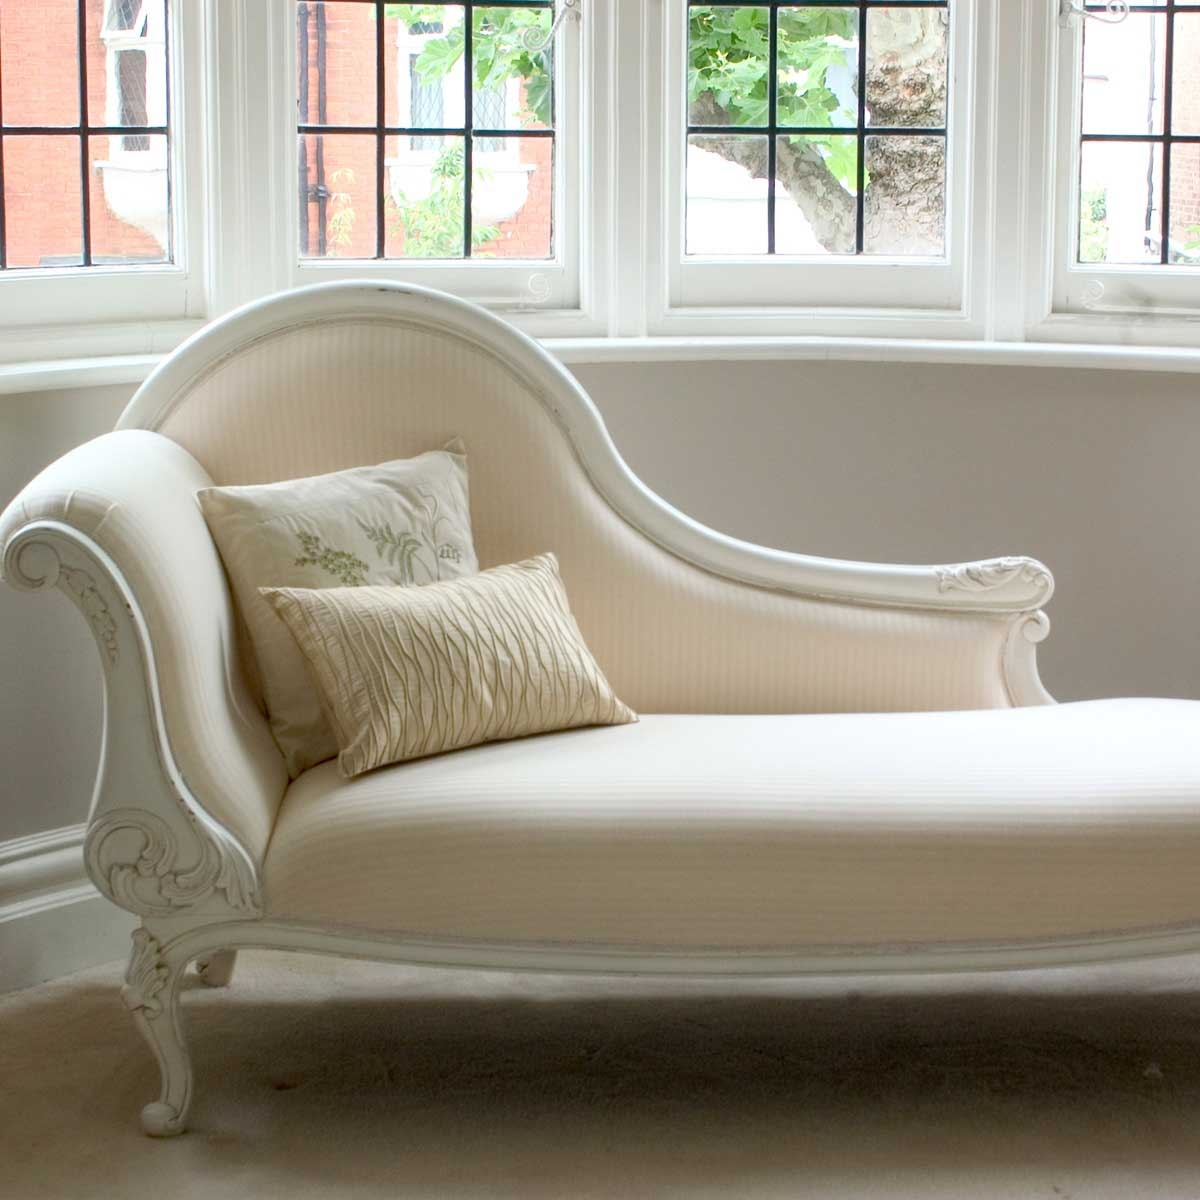 Bedroom Chaise Lounge 2 Projects To Try Pinterest Chaise Intended For Sofa Lounge Chairs (Image 5 of 14)